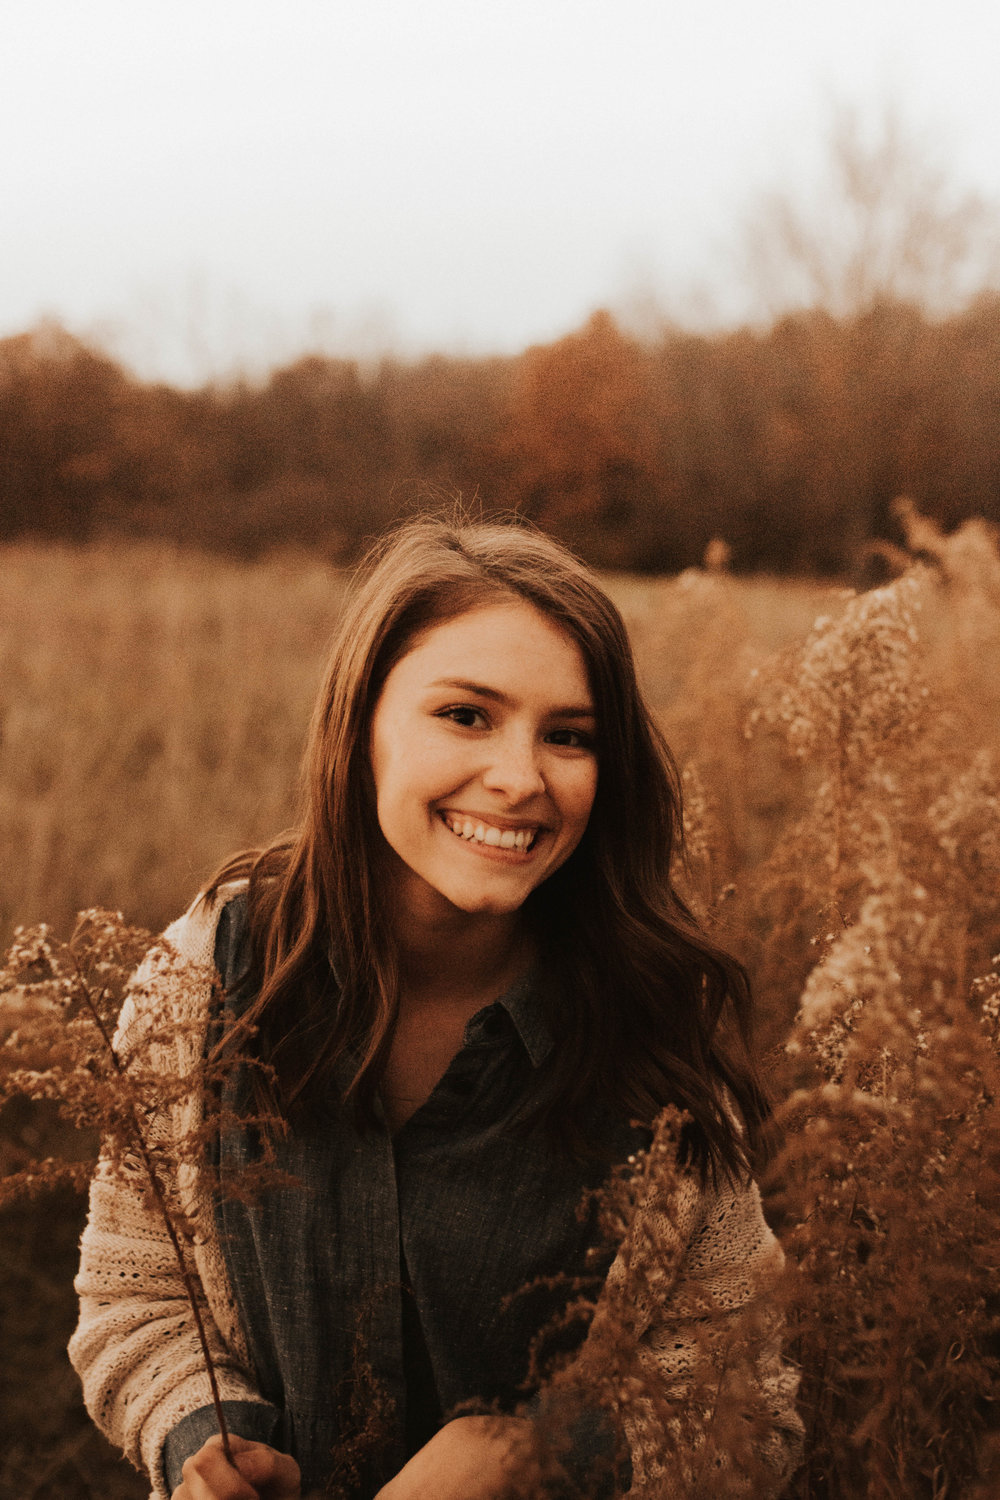 """Hi! I'm Kaylee. - A photographer based in Missouri. I'm a lover of cereal, sweet tea (how midwest of me), and binge watching Youtube videos about organizing. A while back I chose the name """"Creativekaylee"""" as my Webkinz username and have used it for everything since, and it's just kind of stuck. So let me introduce myself again… Hi! I'm Creative Kaylee, an art fanatic who is always creating. From shooting weddings to senior portraits to designing branding for different businesses, I love what I have the privilege to do as my job and I'm so honored to welcome you to my little corner of the internet."""